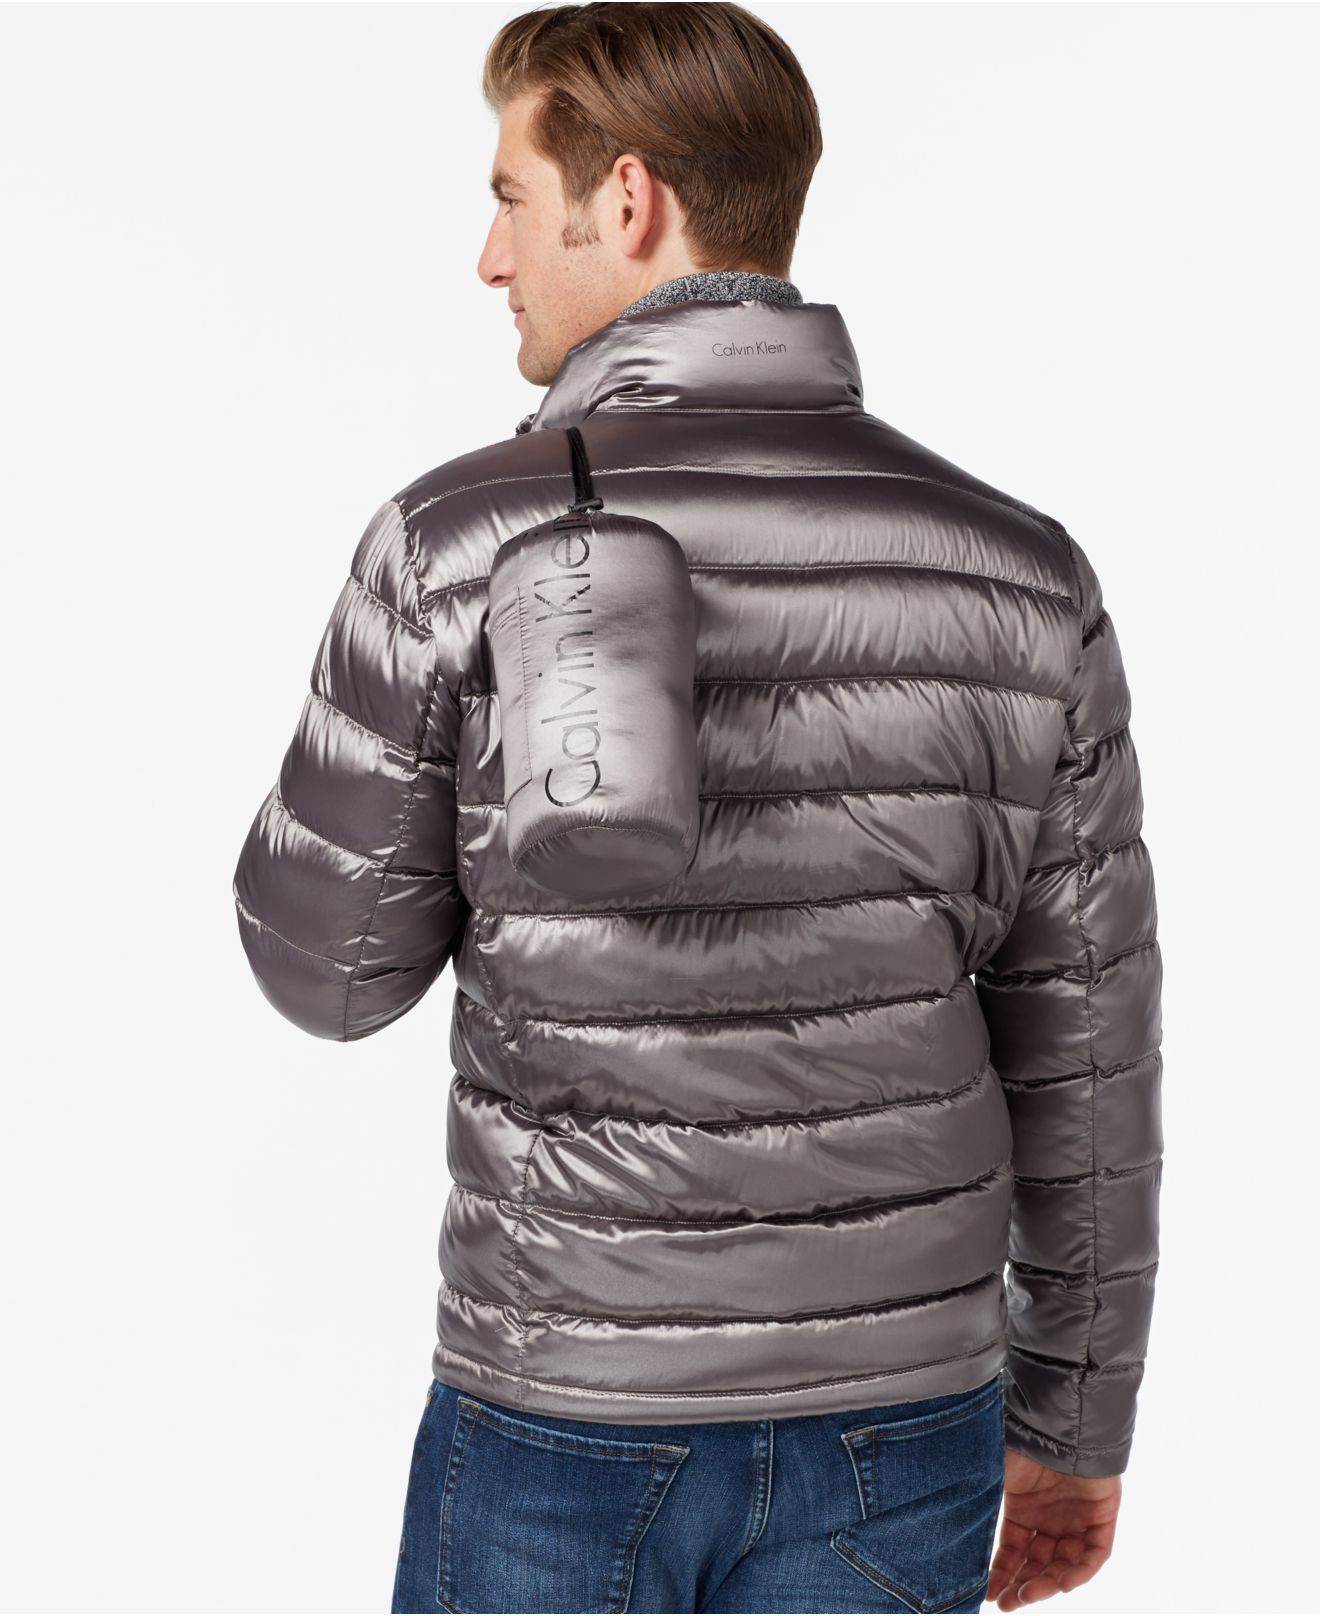 Lyst Calvin Klein Men S Packable Down Jacket In Gray For Men